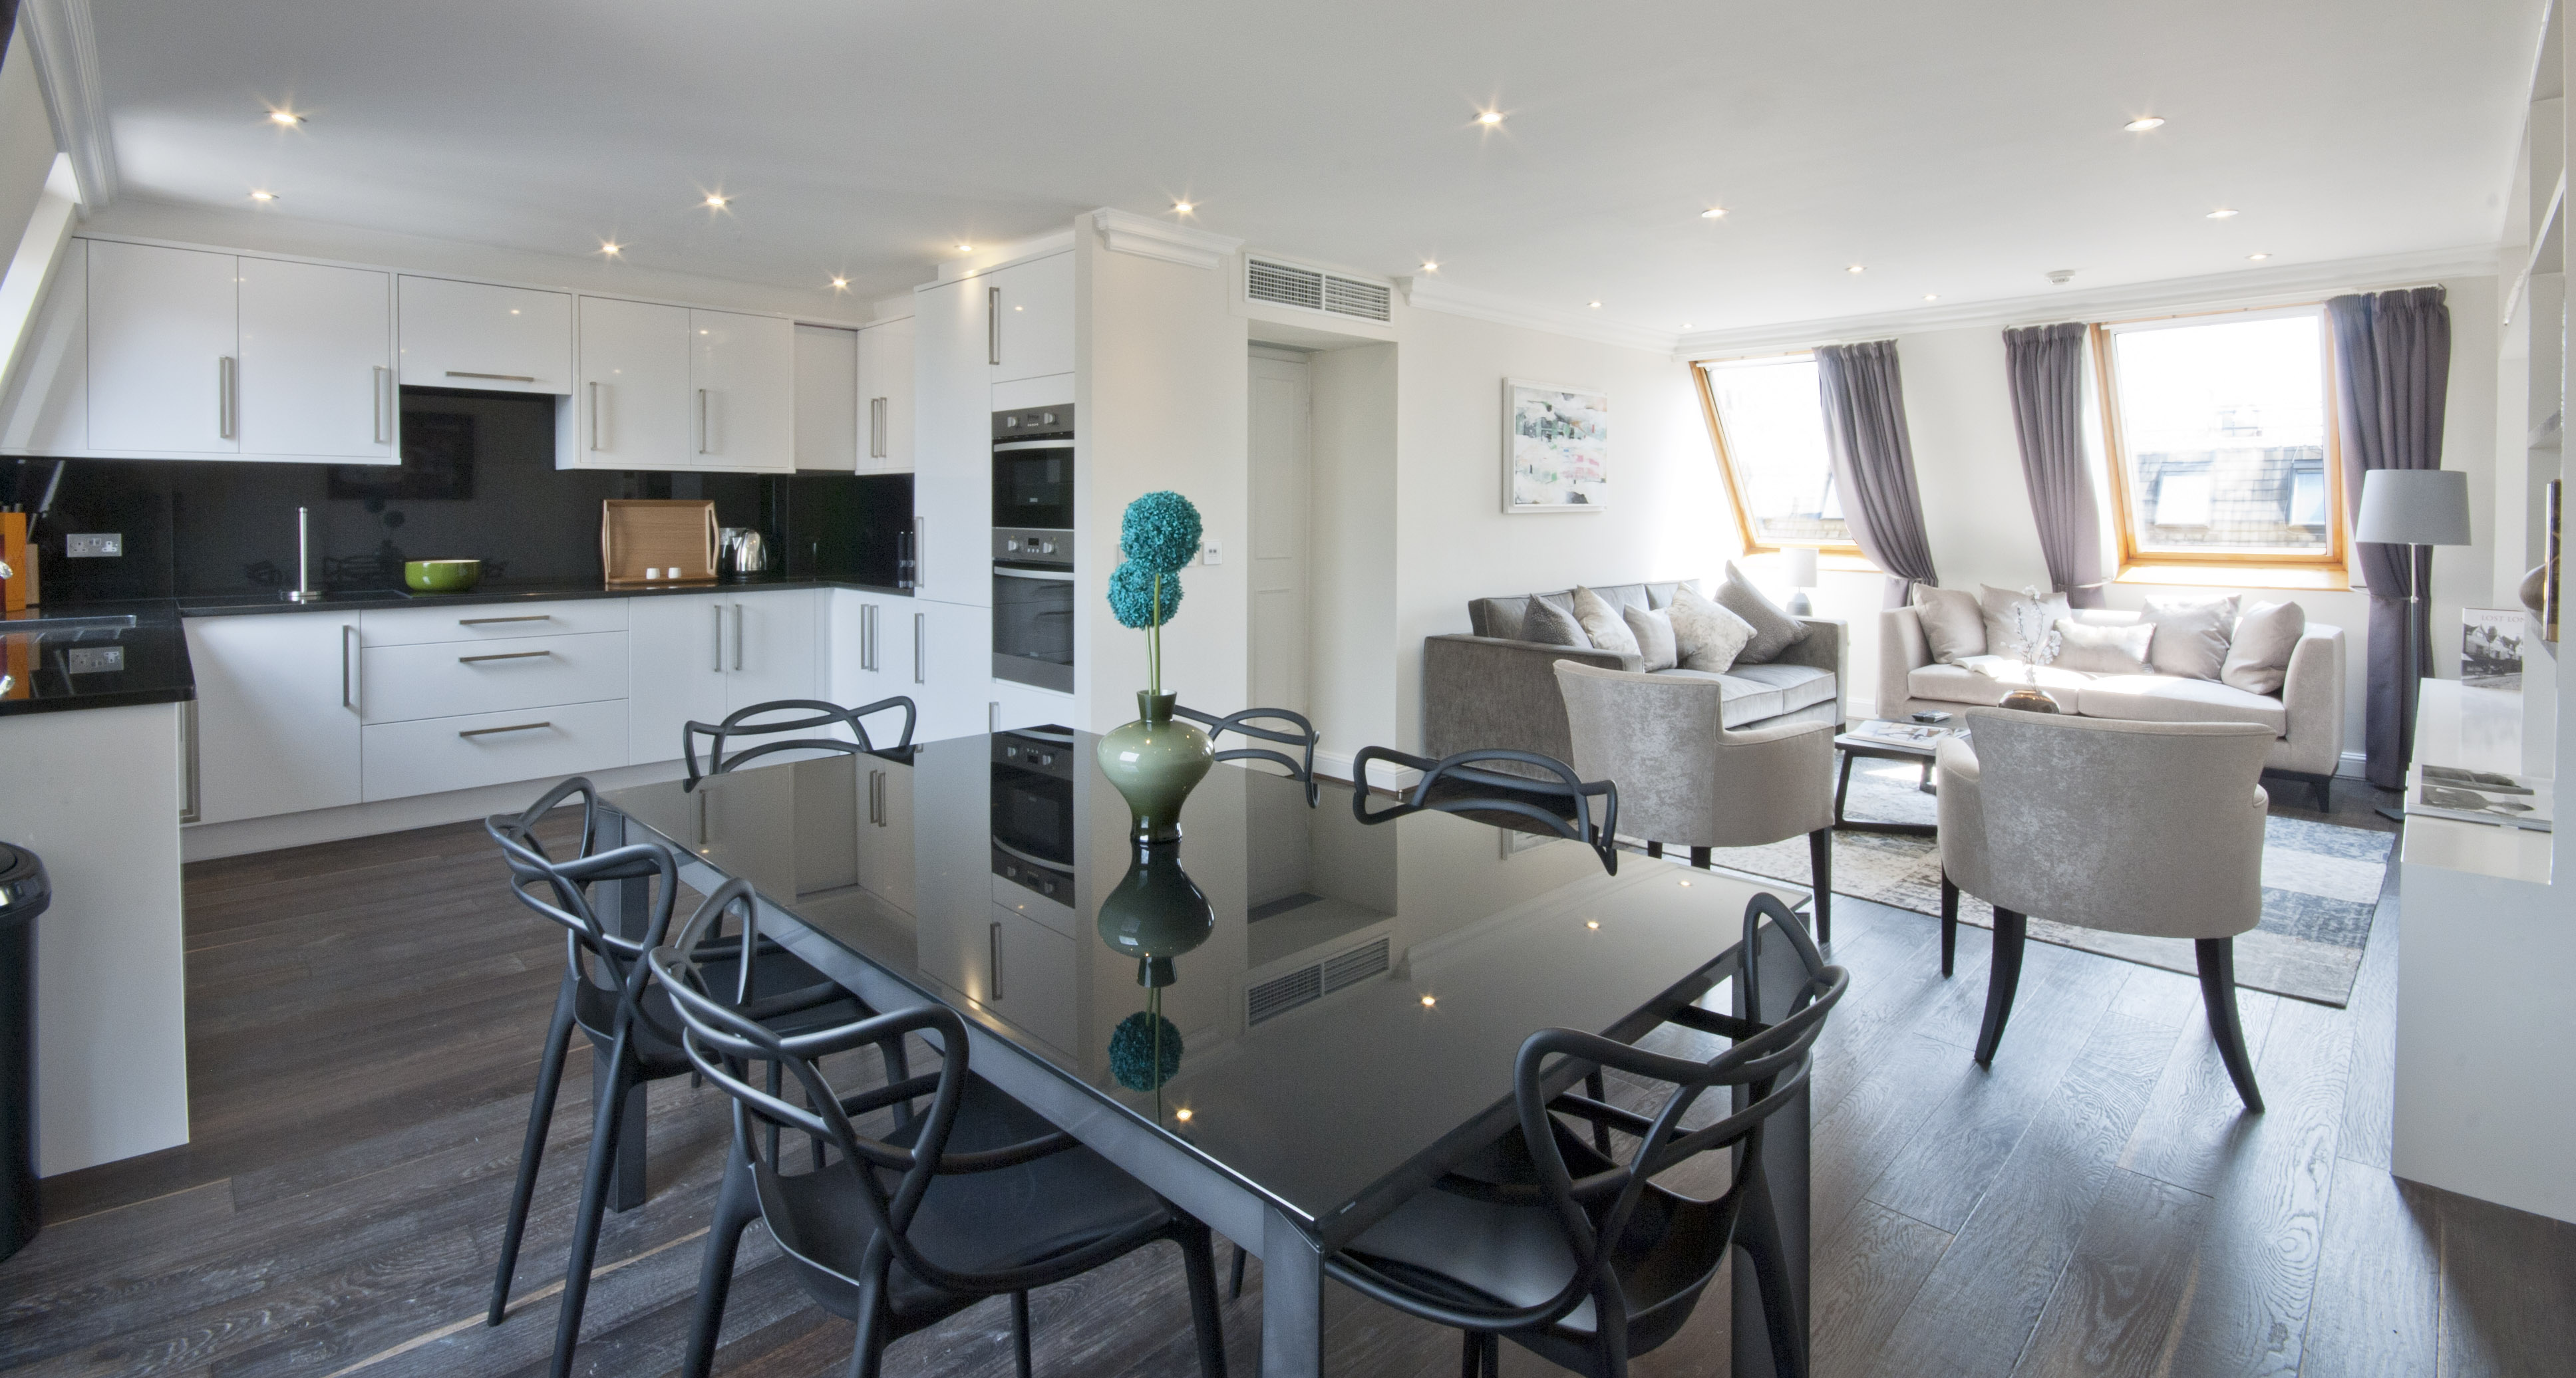 3 Bedroom Apartments Rent Penthouse Apartments London Luxury Penthouse Rentals